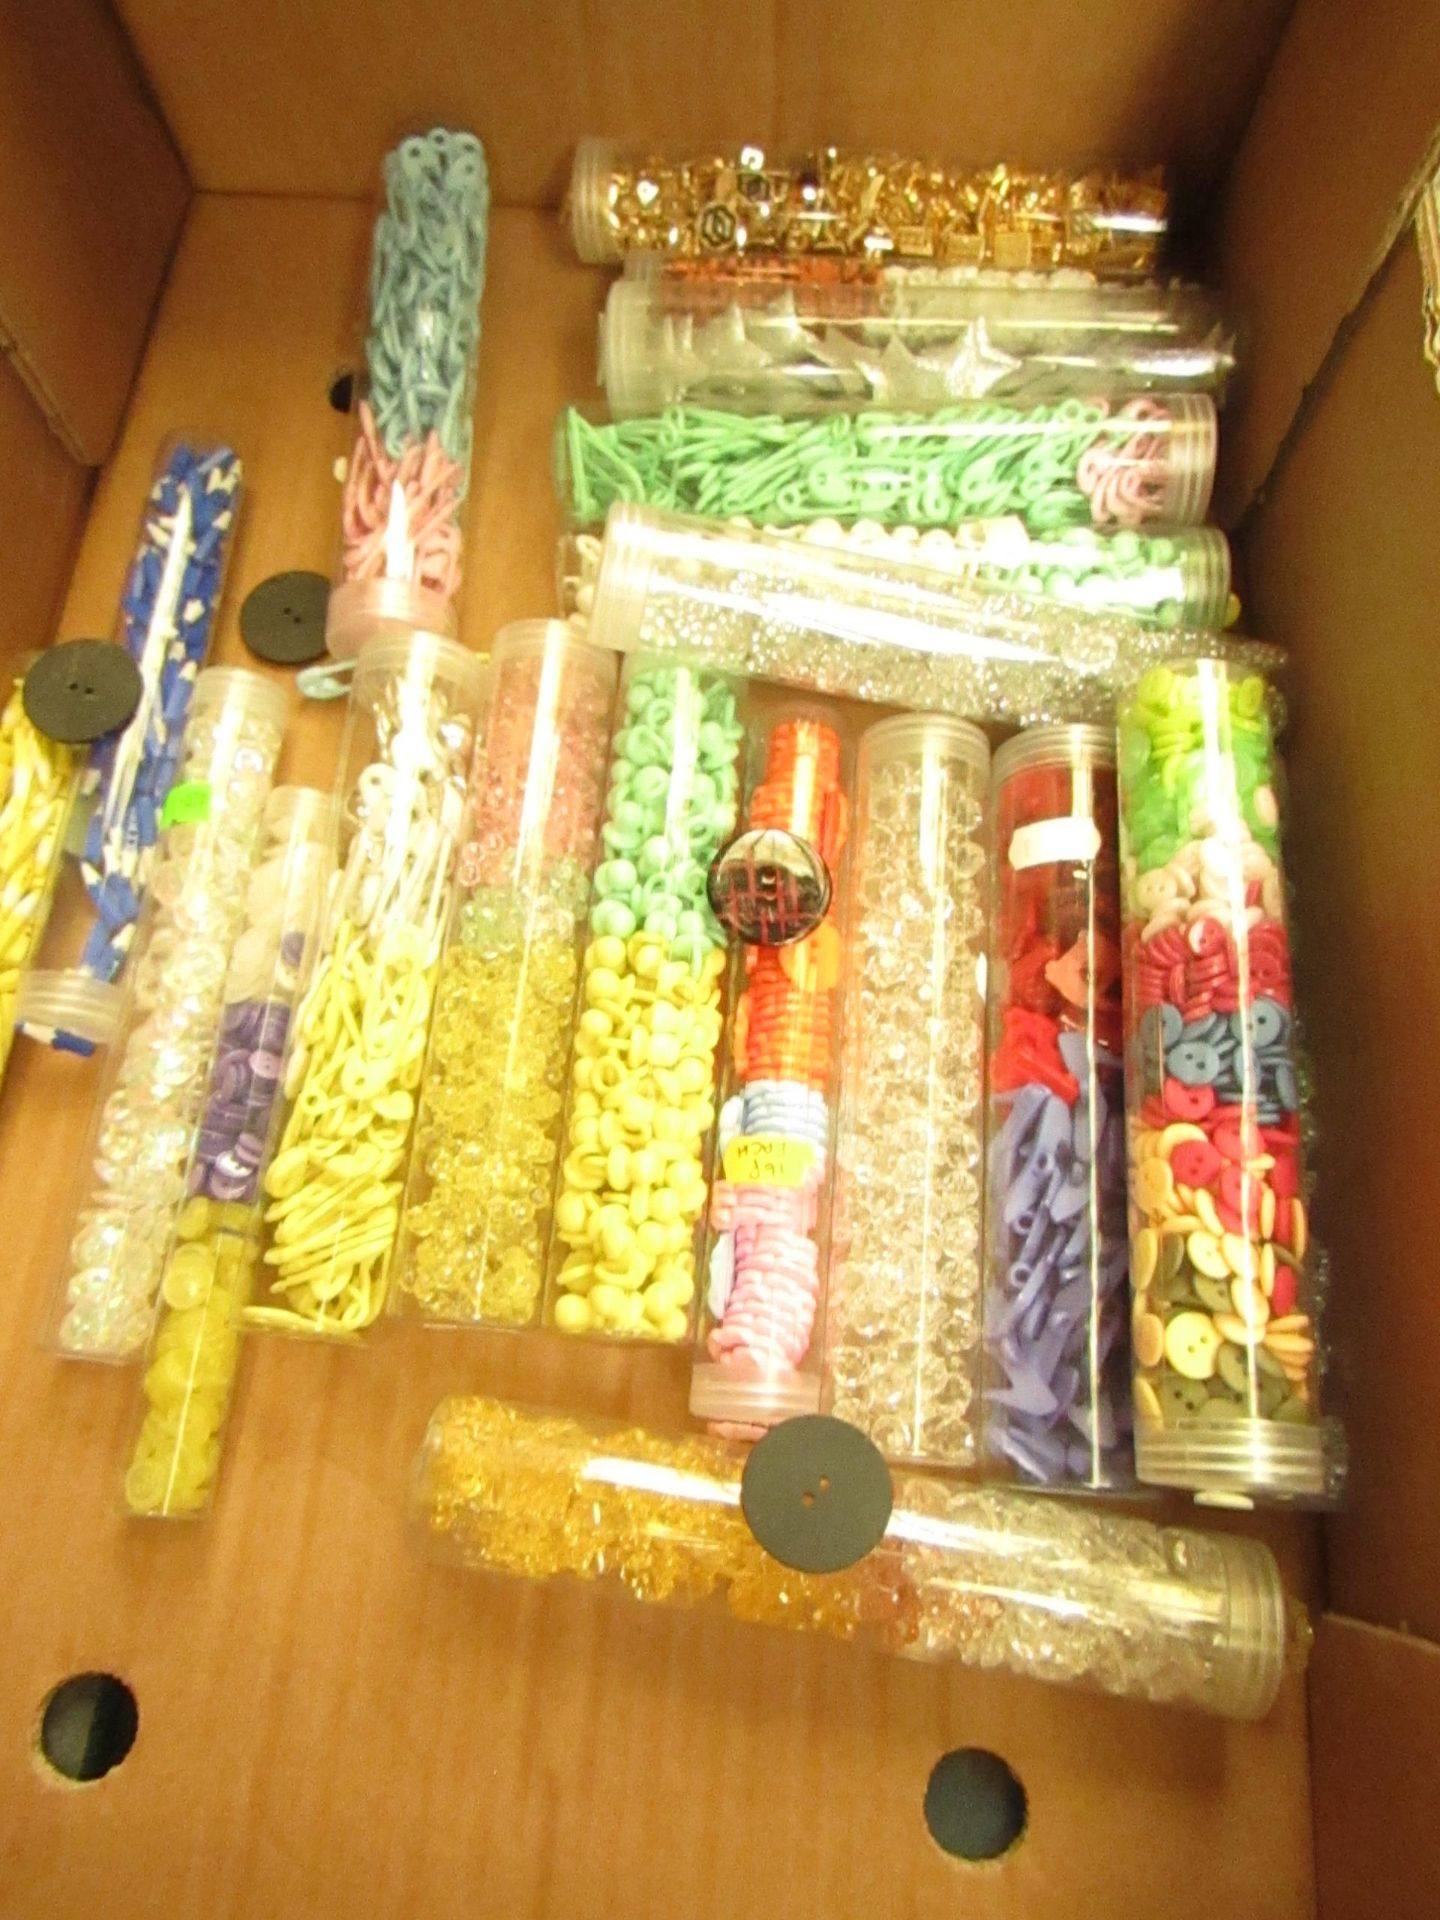 Lot 141 - 10 x various Designs Tubes of Buttons new see image randomly picked